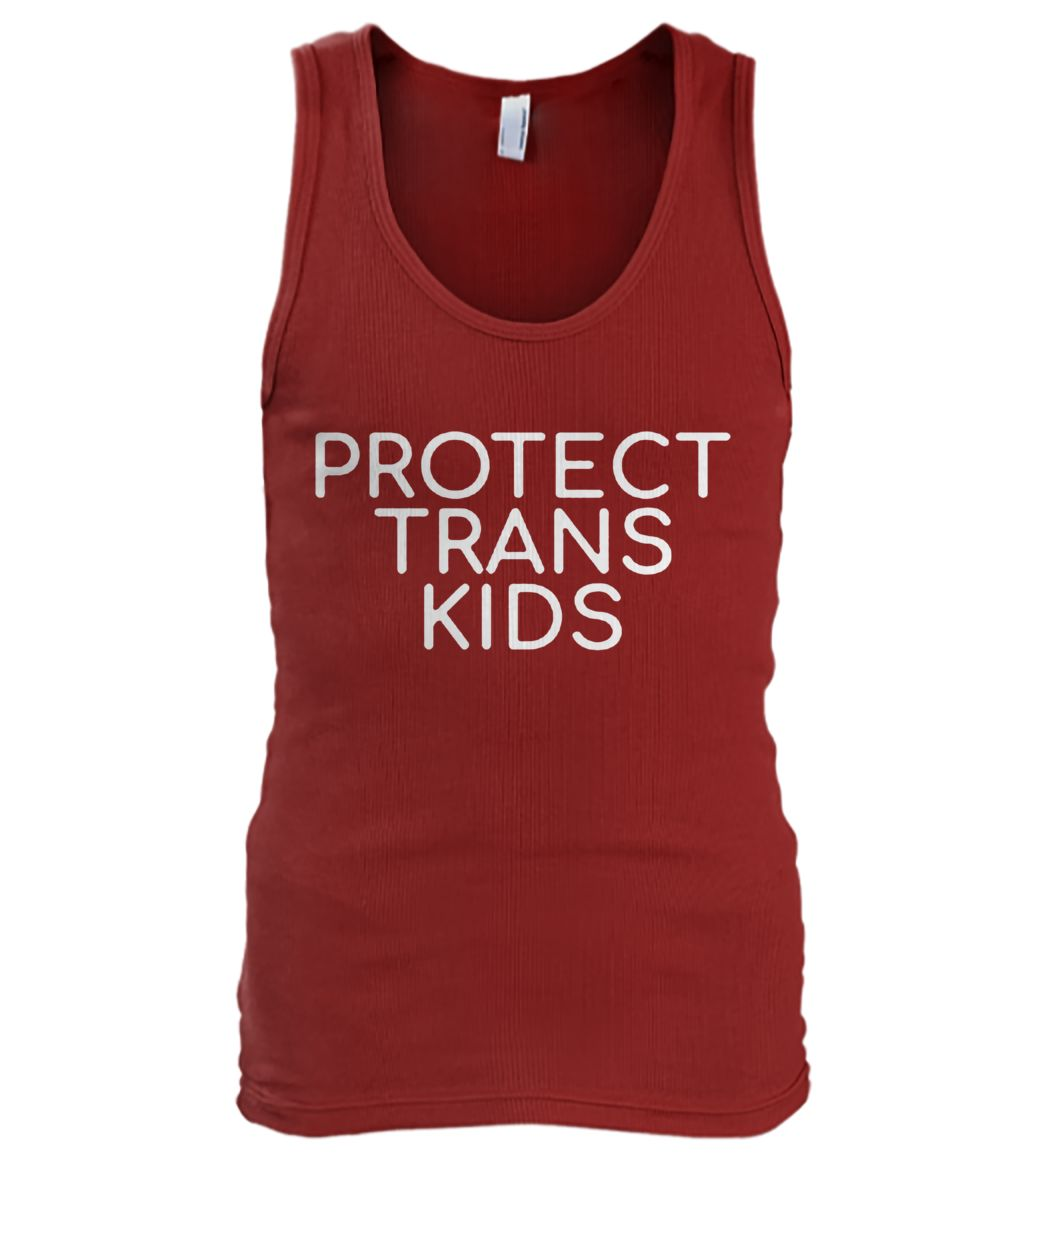 Protect trans kids men's tank top